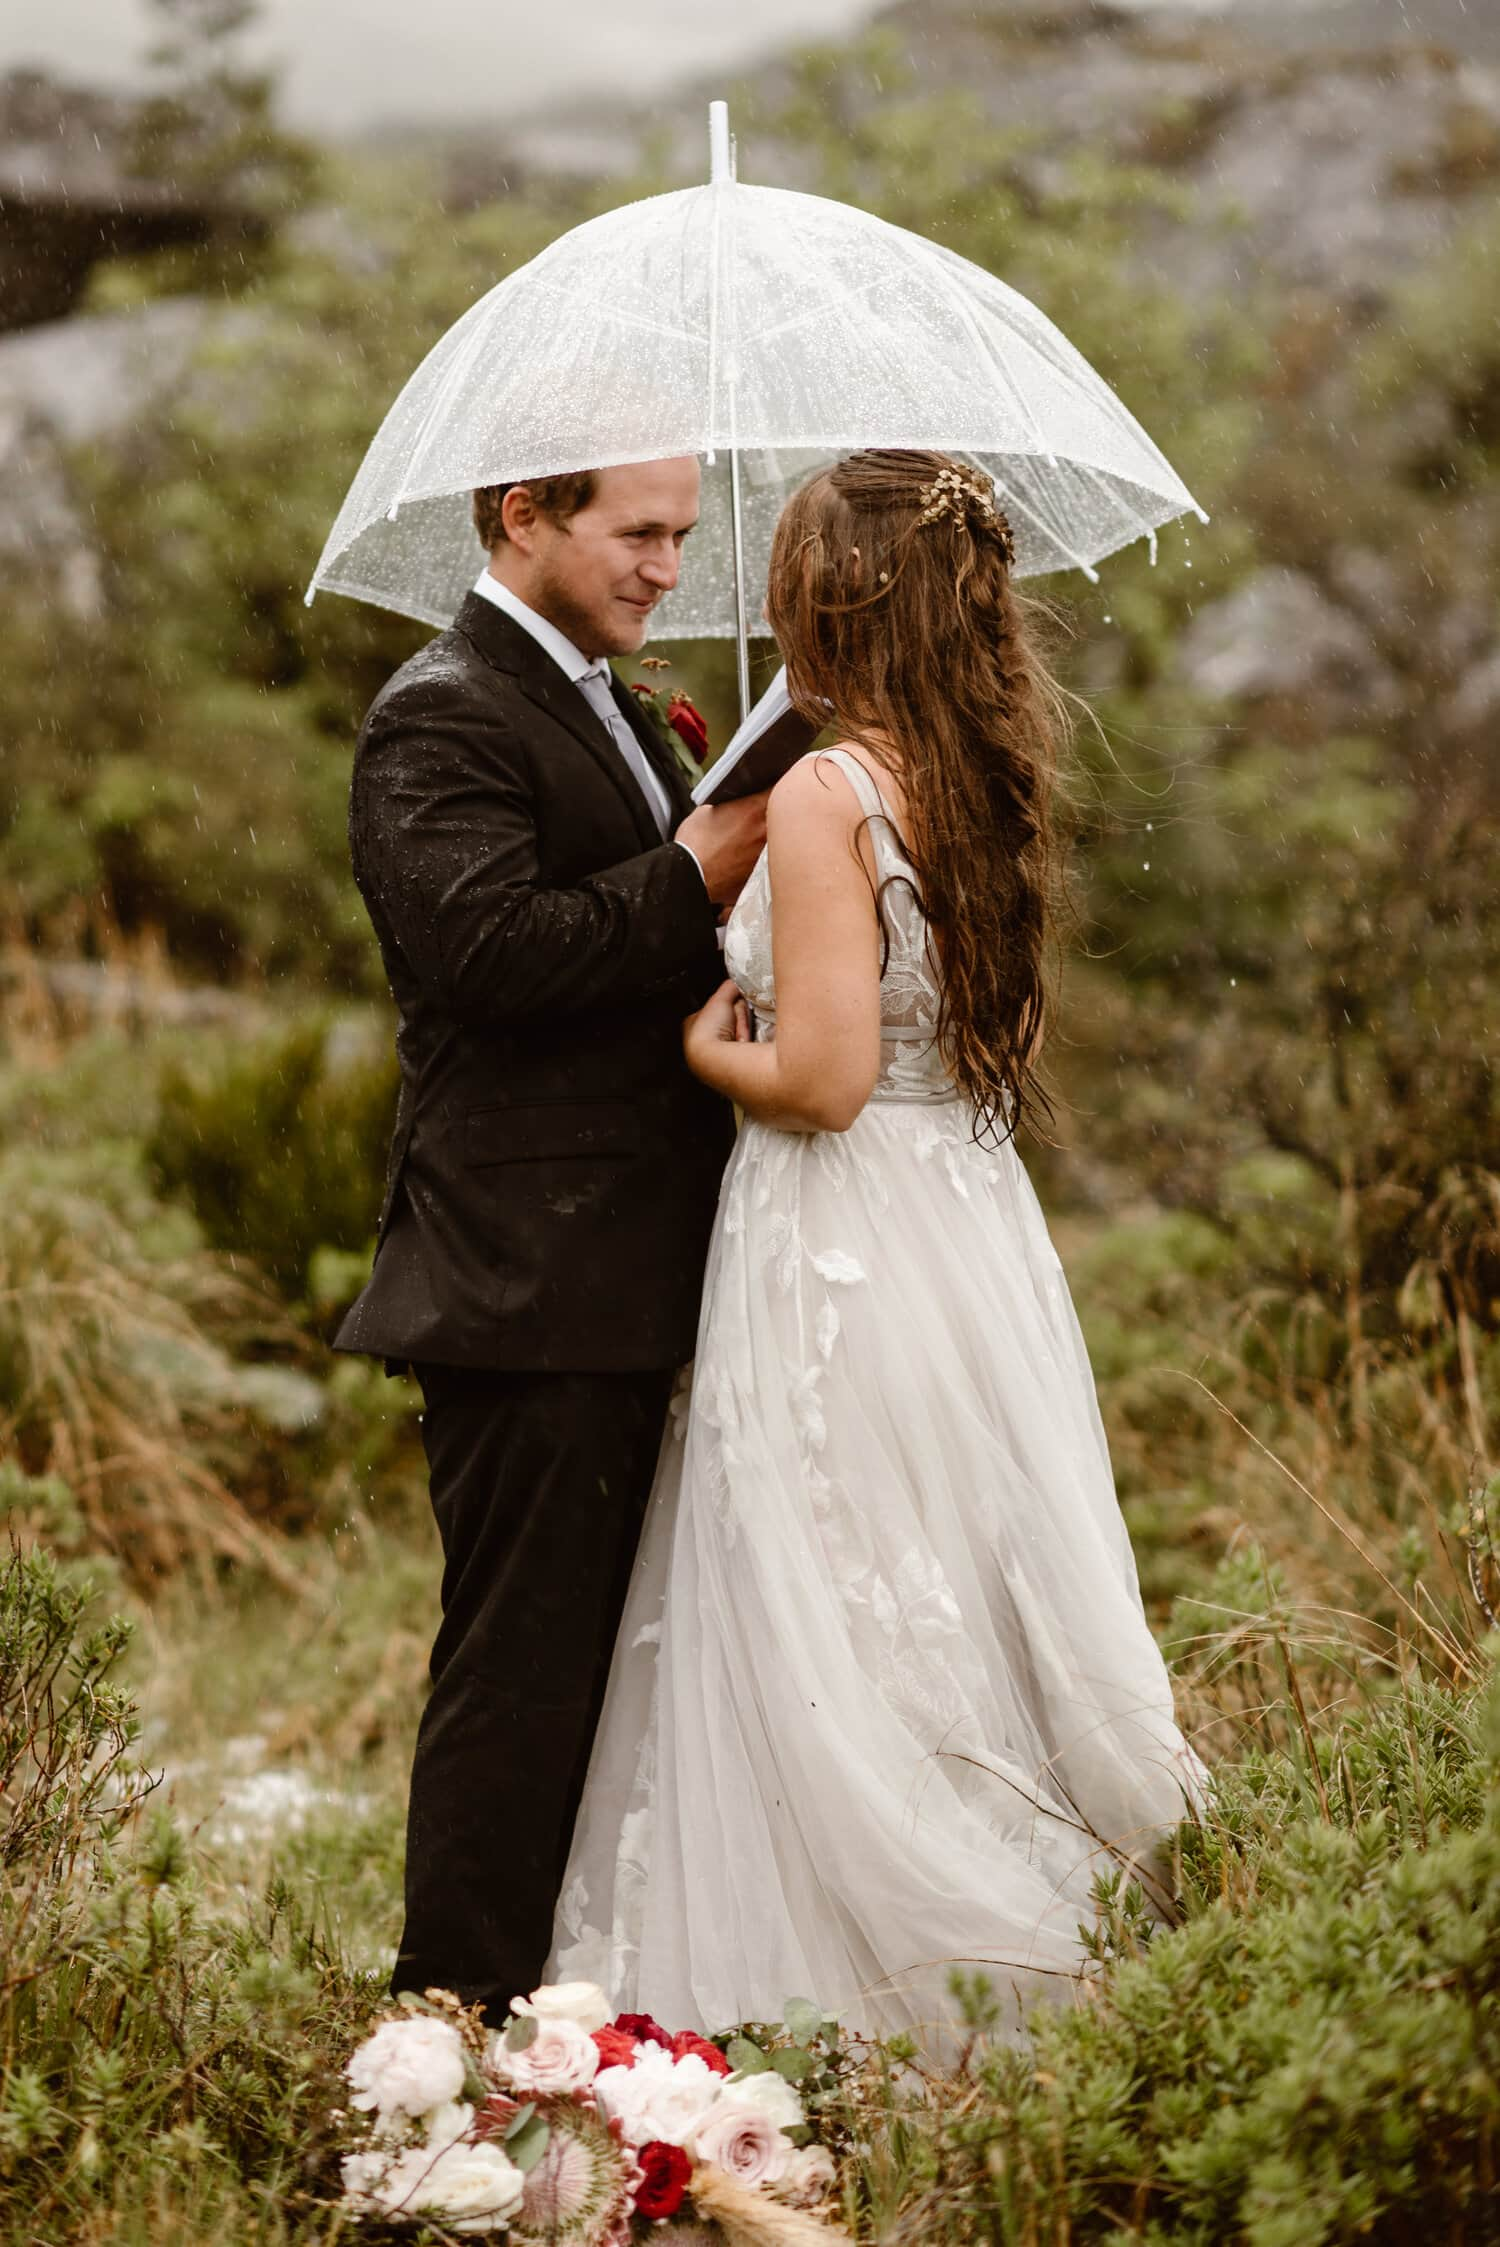 Couple Eloping in New Zealand during the rainy season